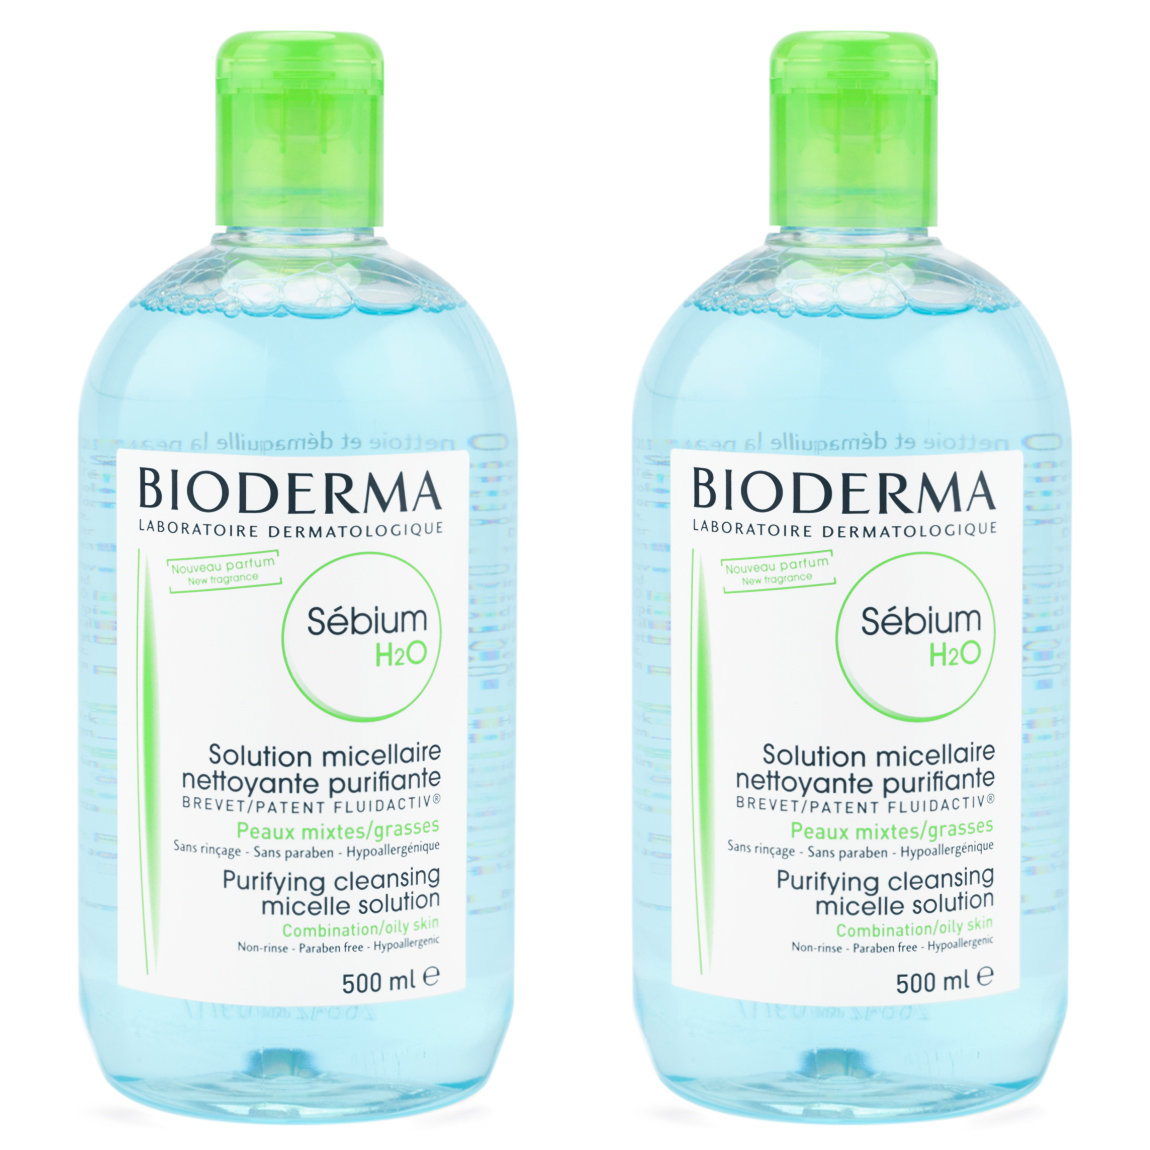 Buy two 500-ml Bioderma Sébium H2O for $19.90 (Value of $29.80)